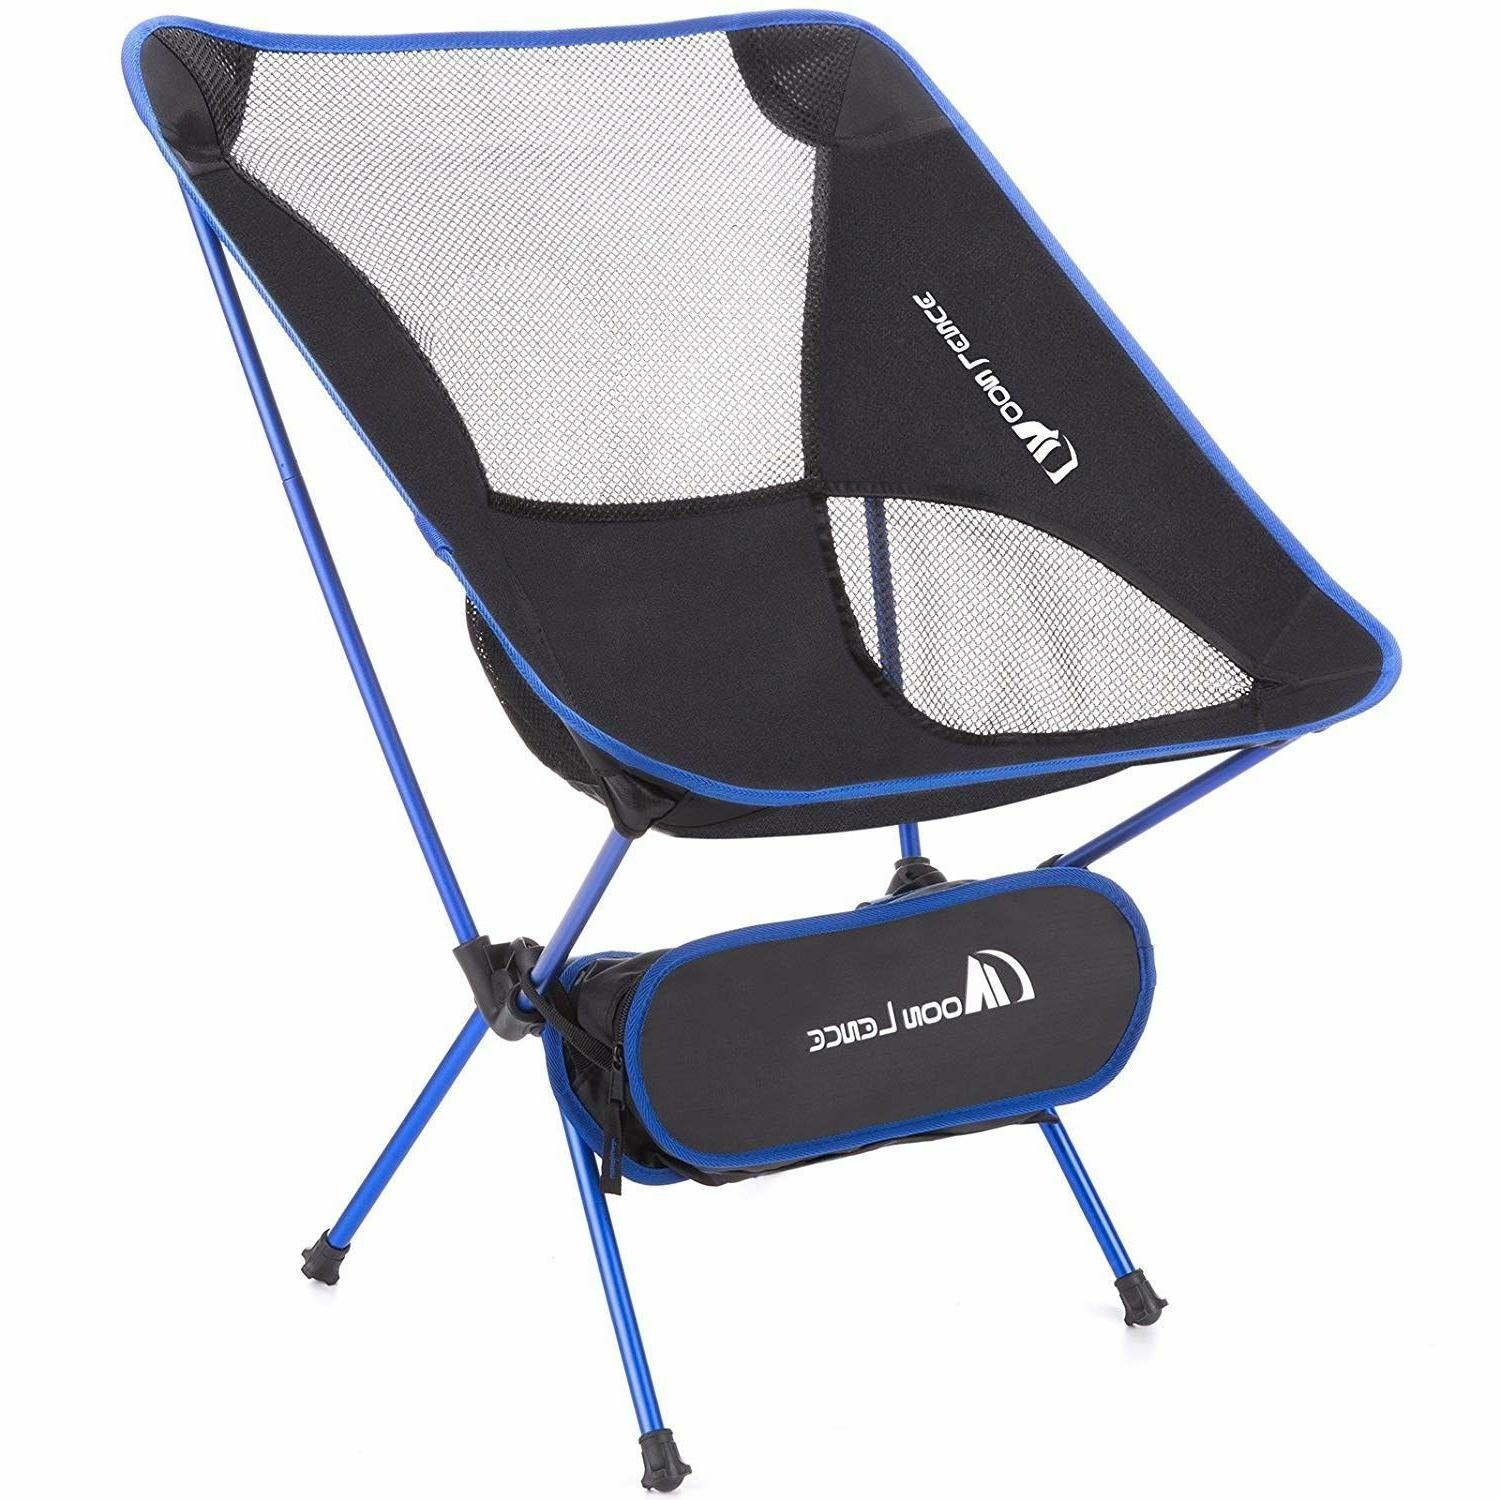 camping chair compact ultralight portable folding backpackin